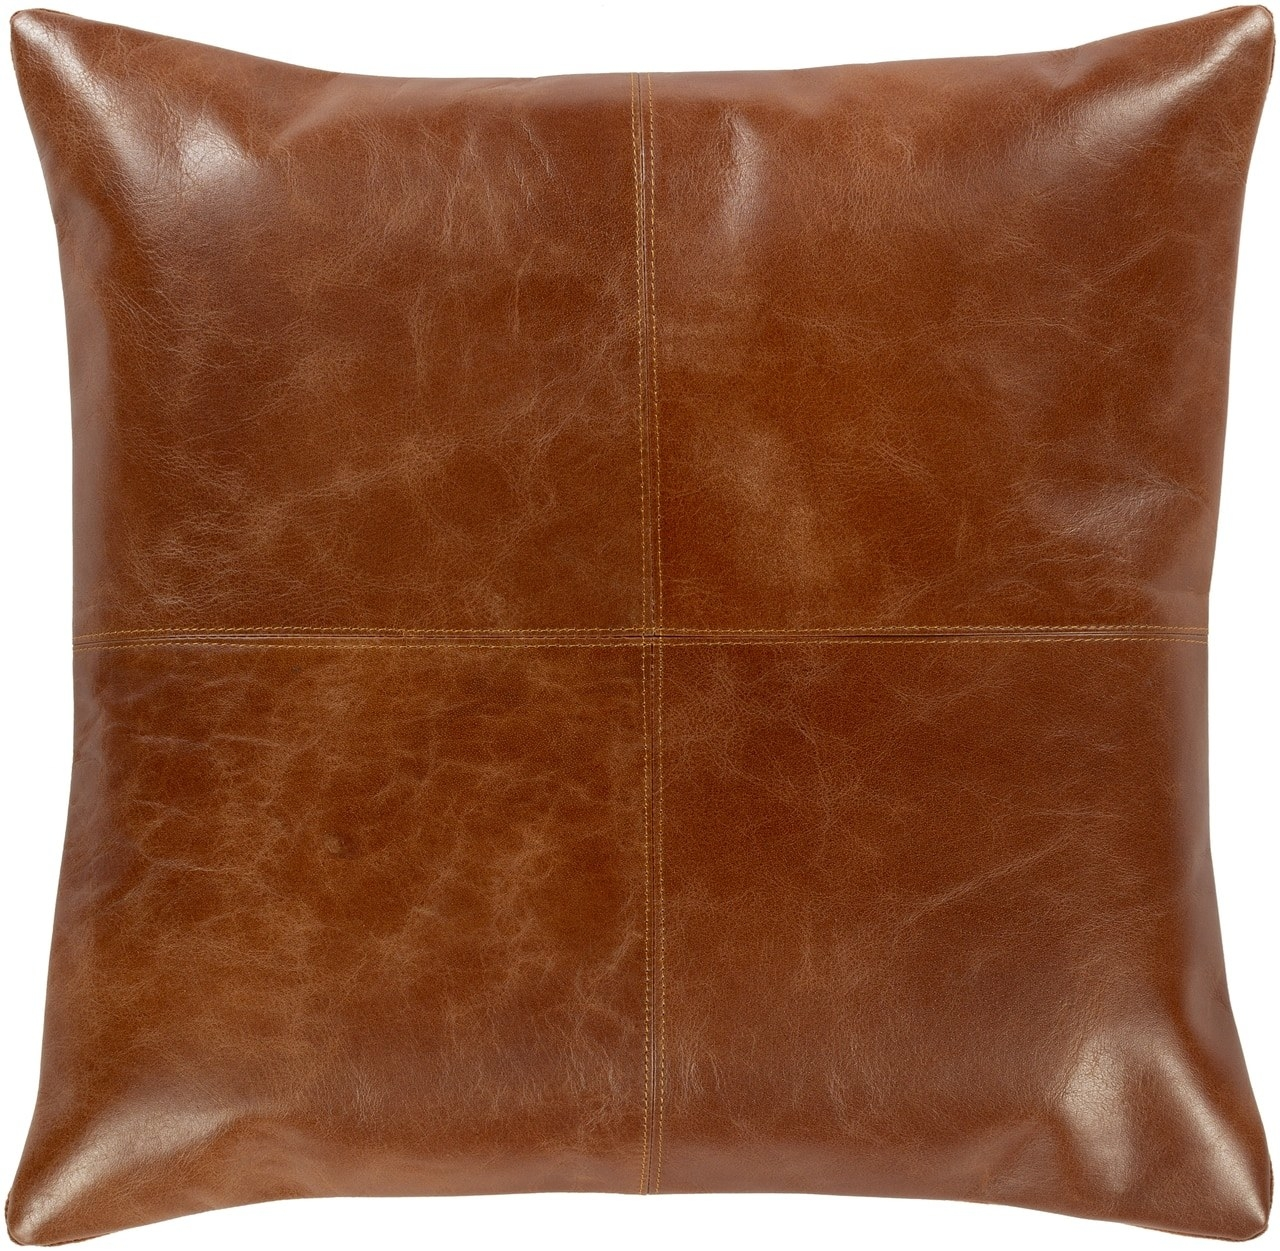 Photo of a pillow with leather cover